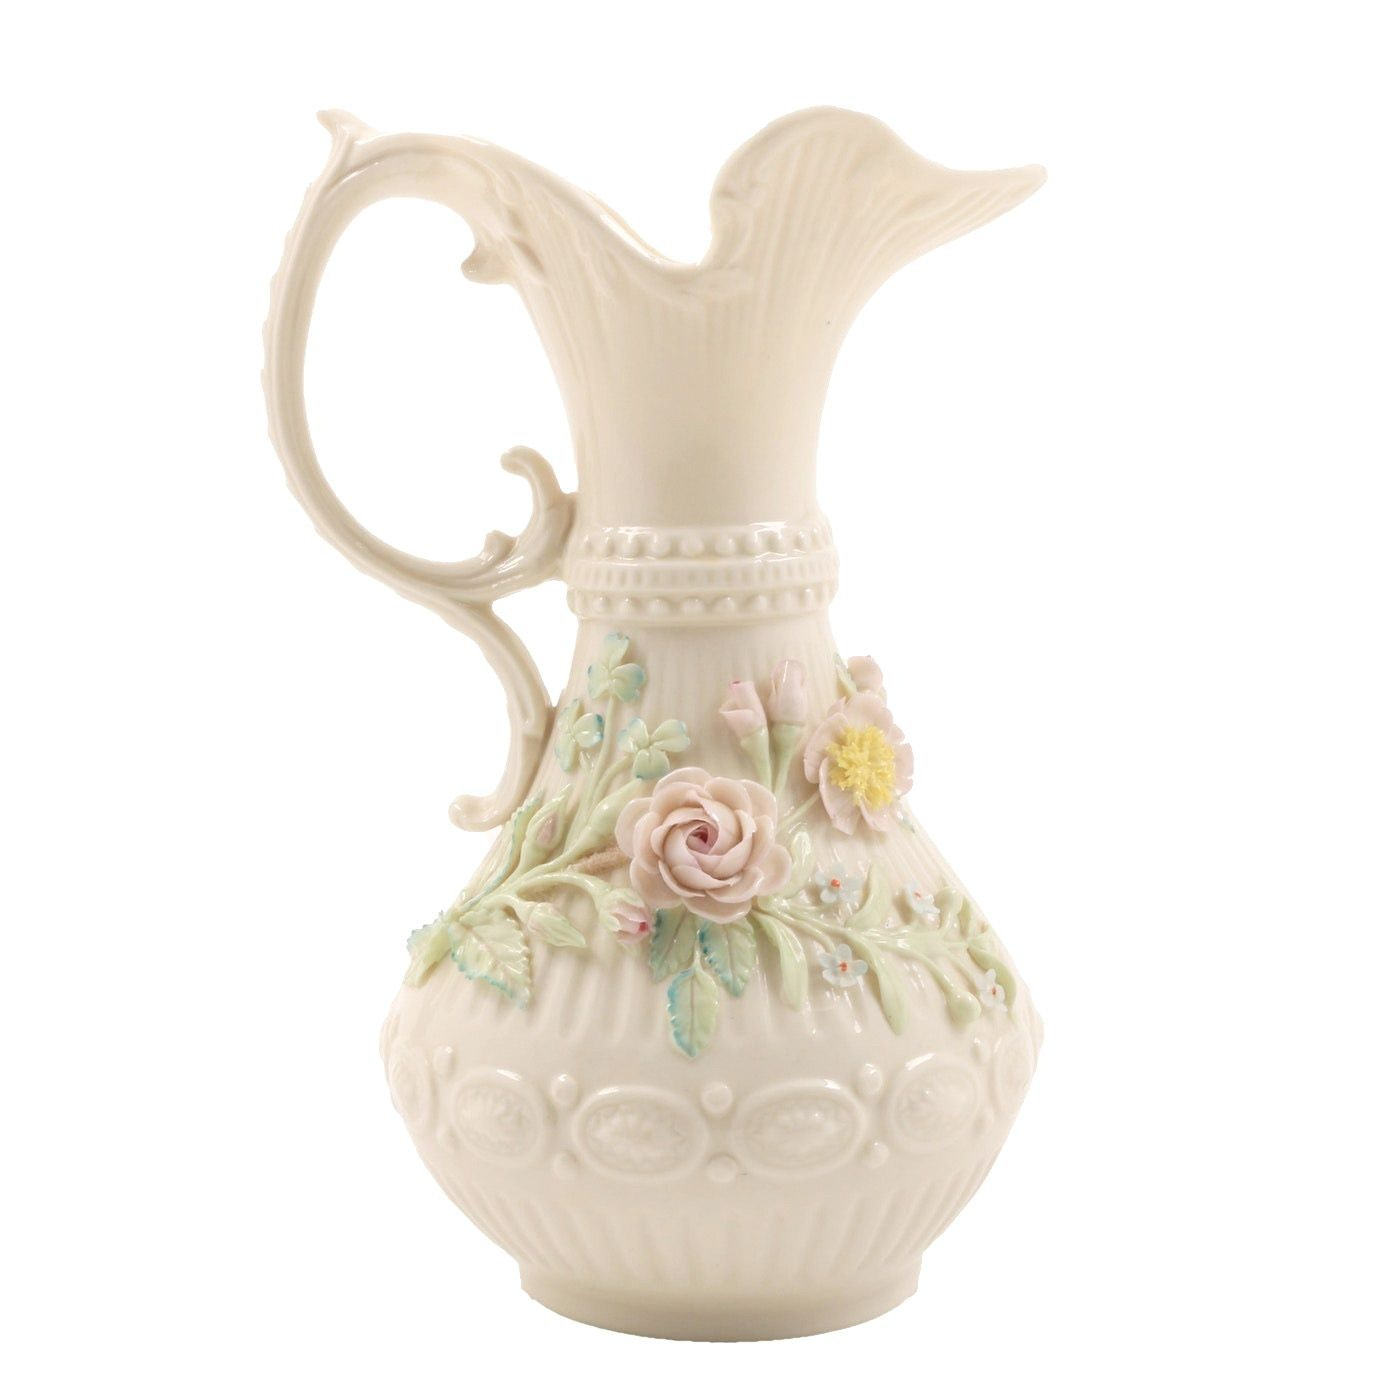 Belleek Porcelain Ewer